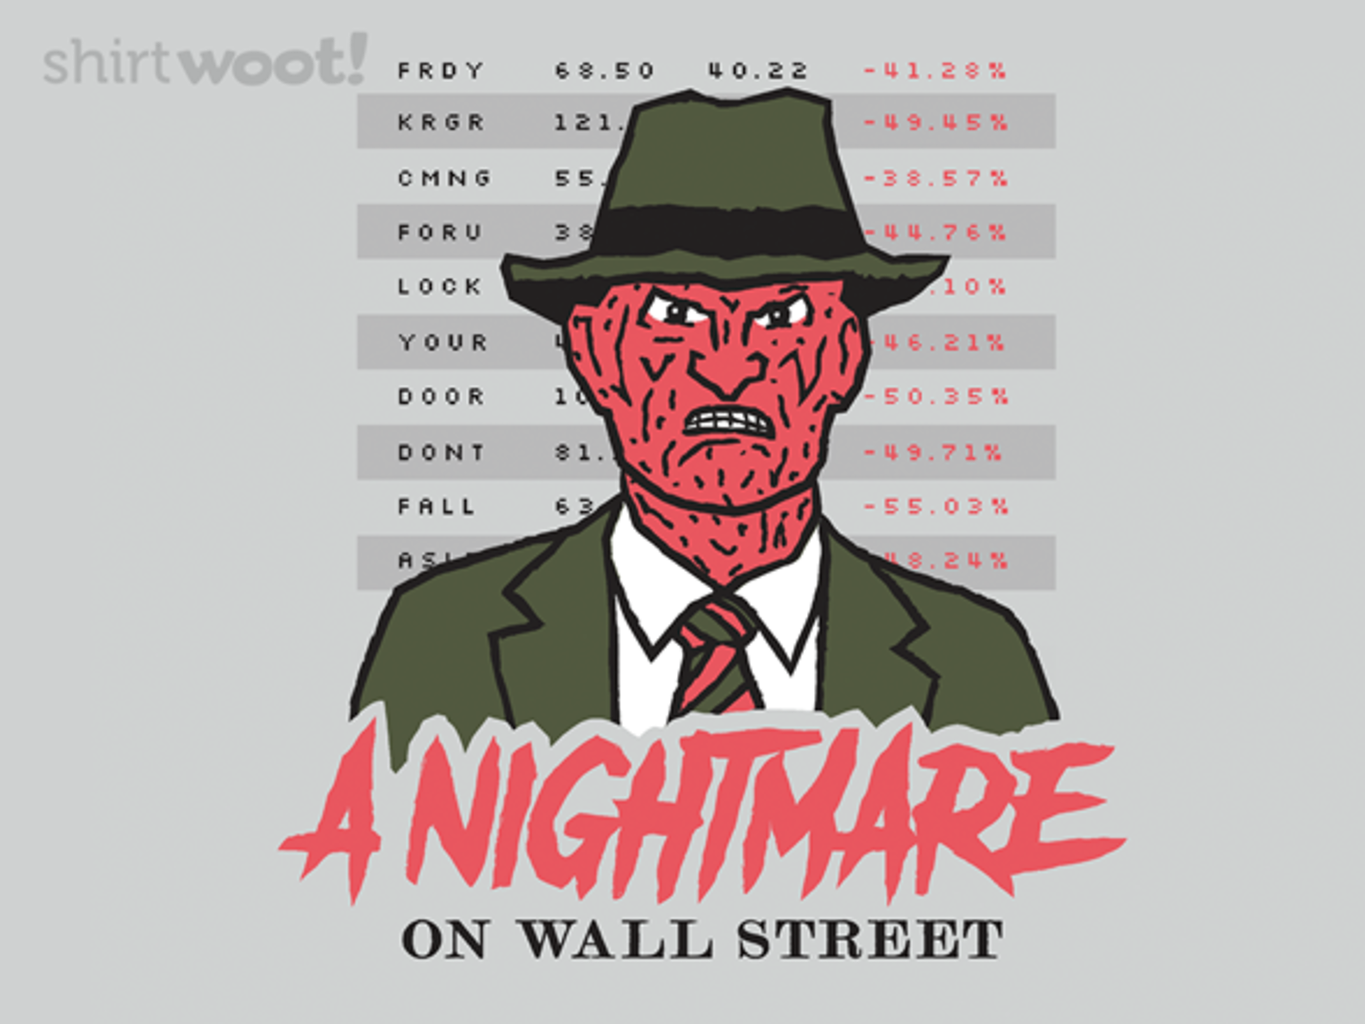 Woot!: A Nightmare on Wall Street - $15.00 + Free shipping